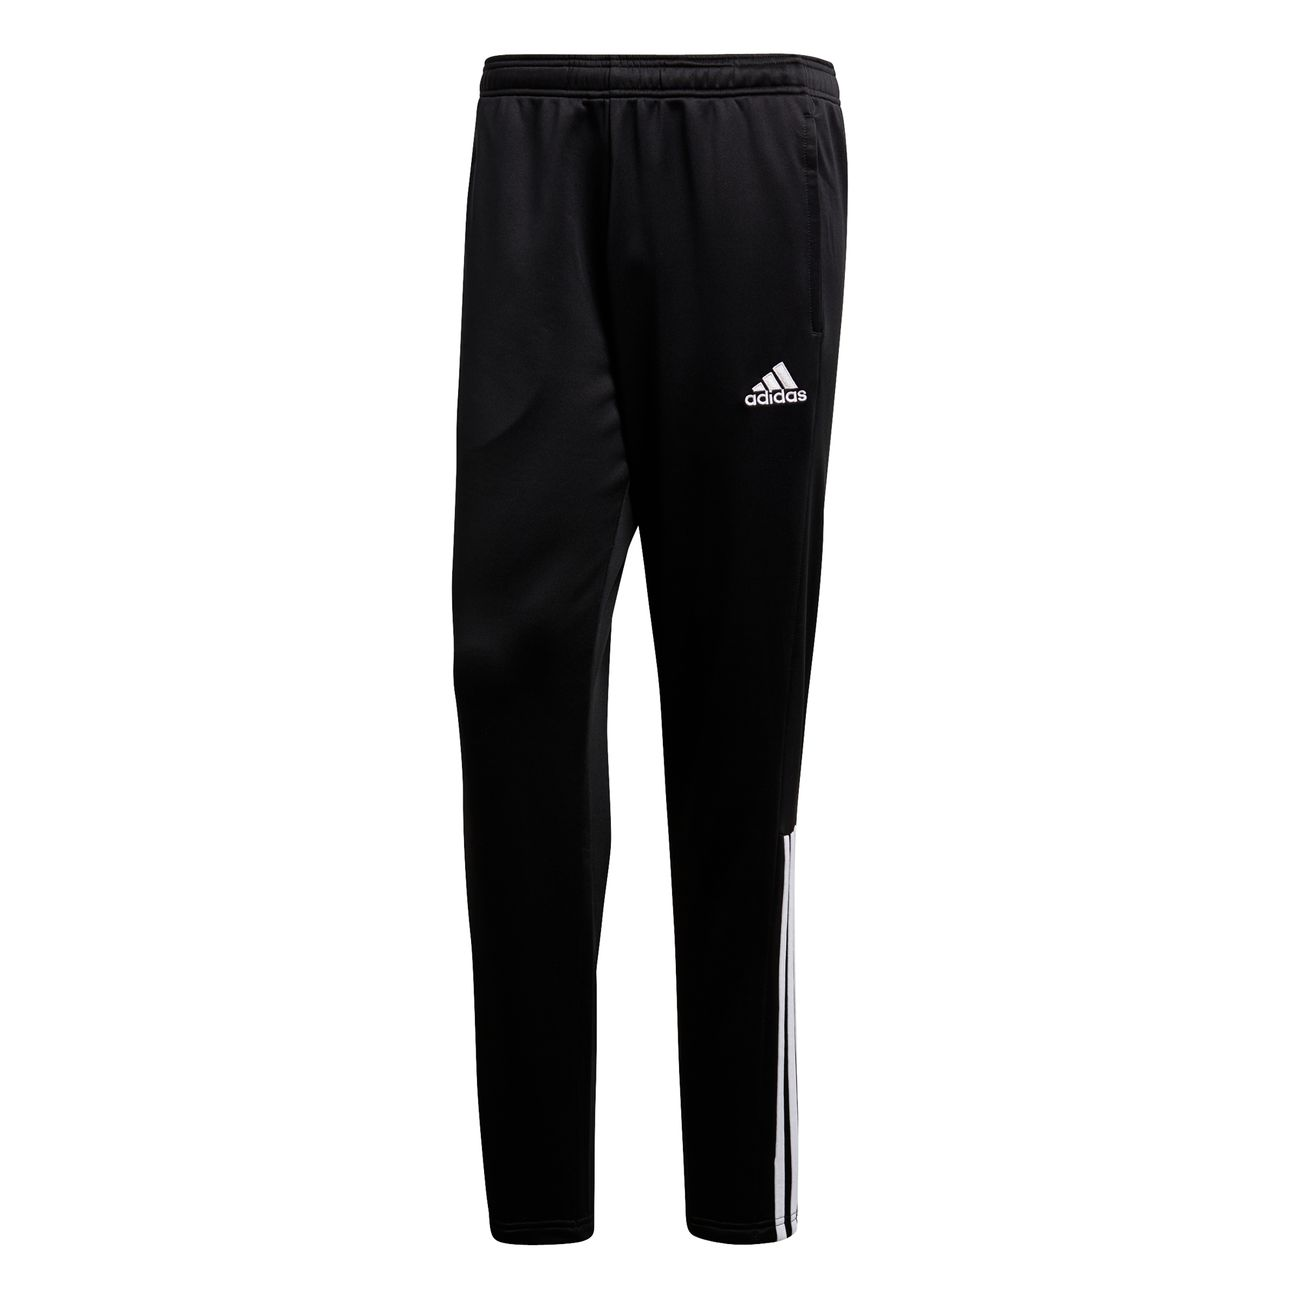 homme survetement adidas